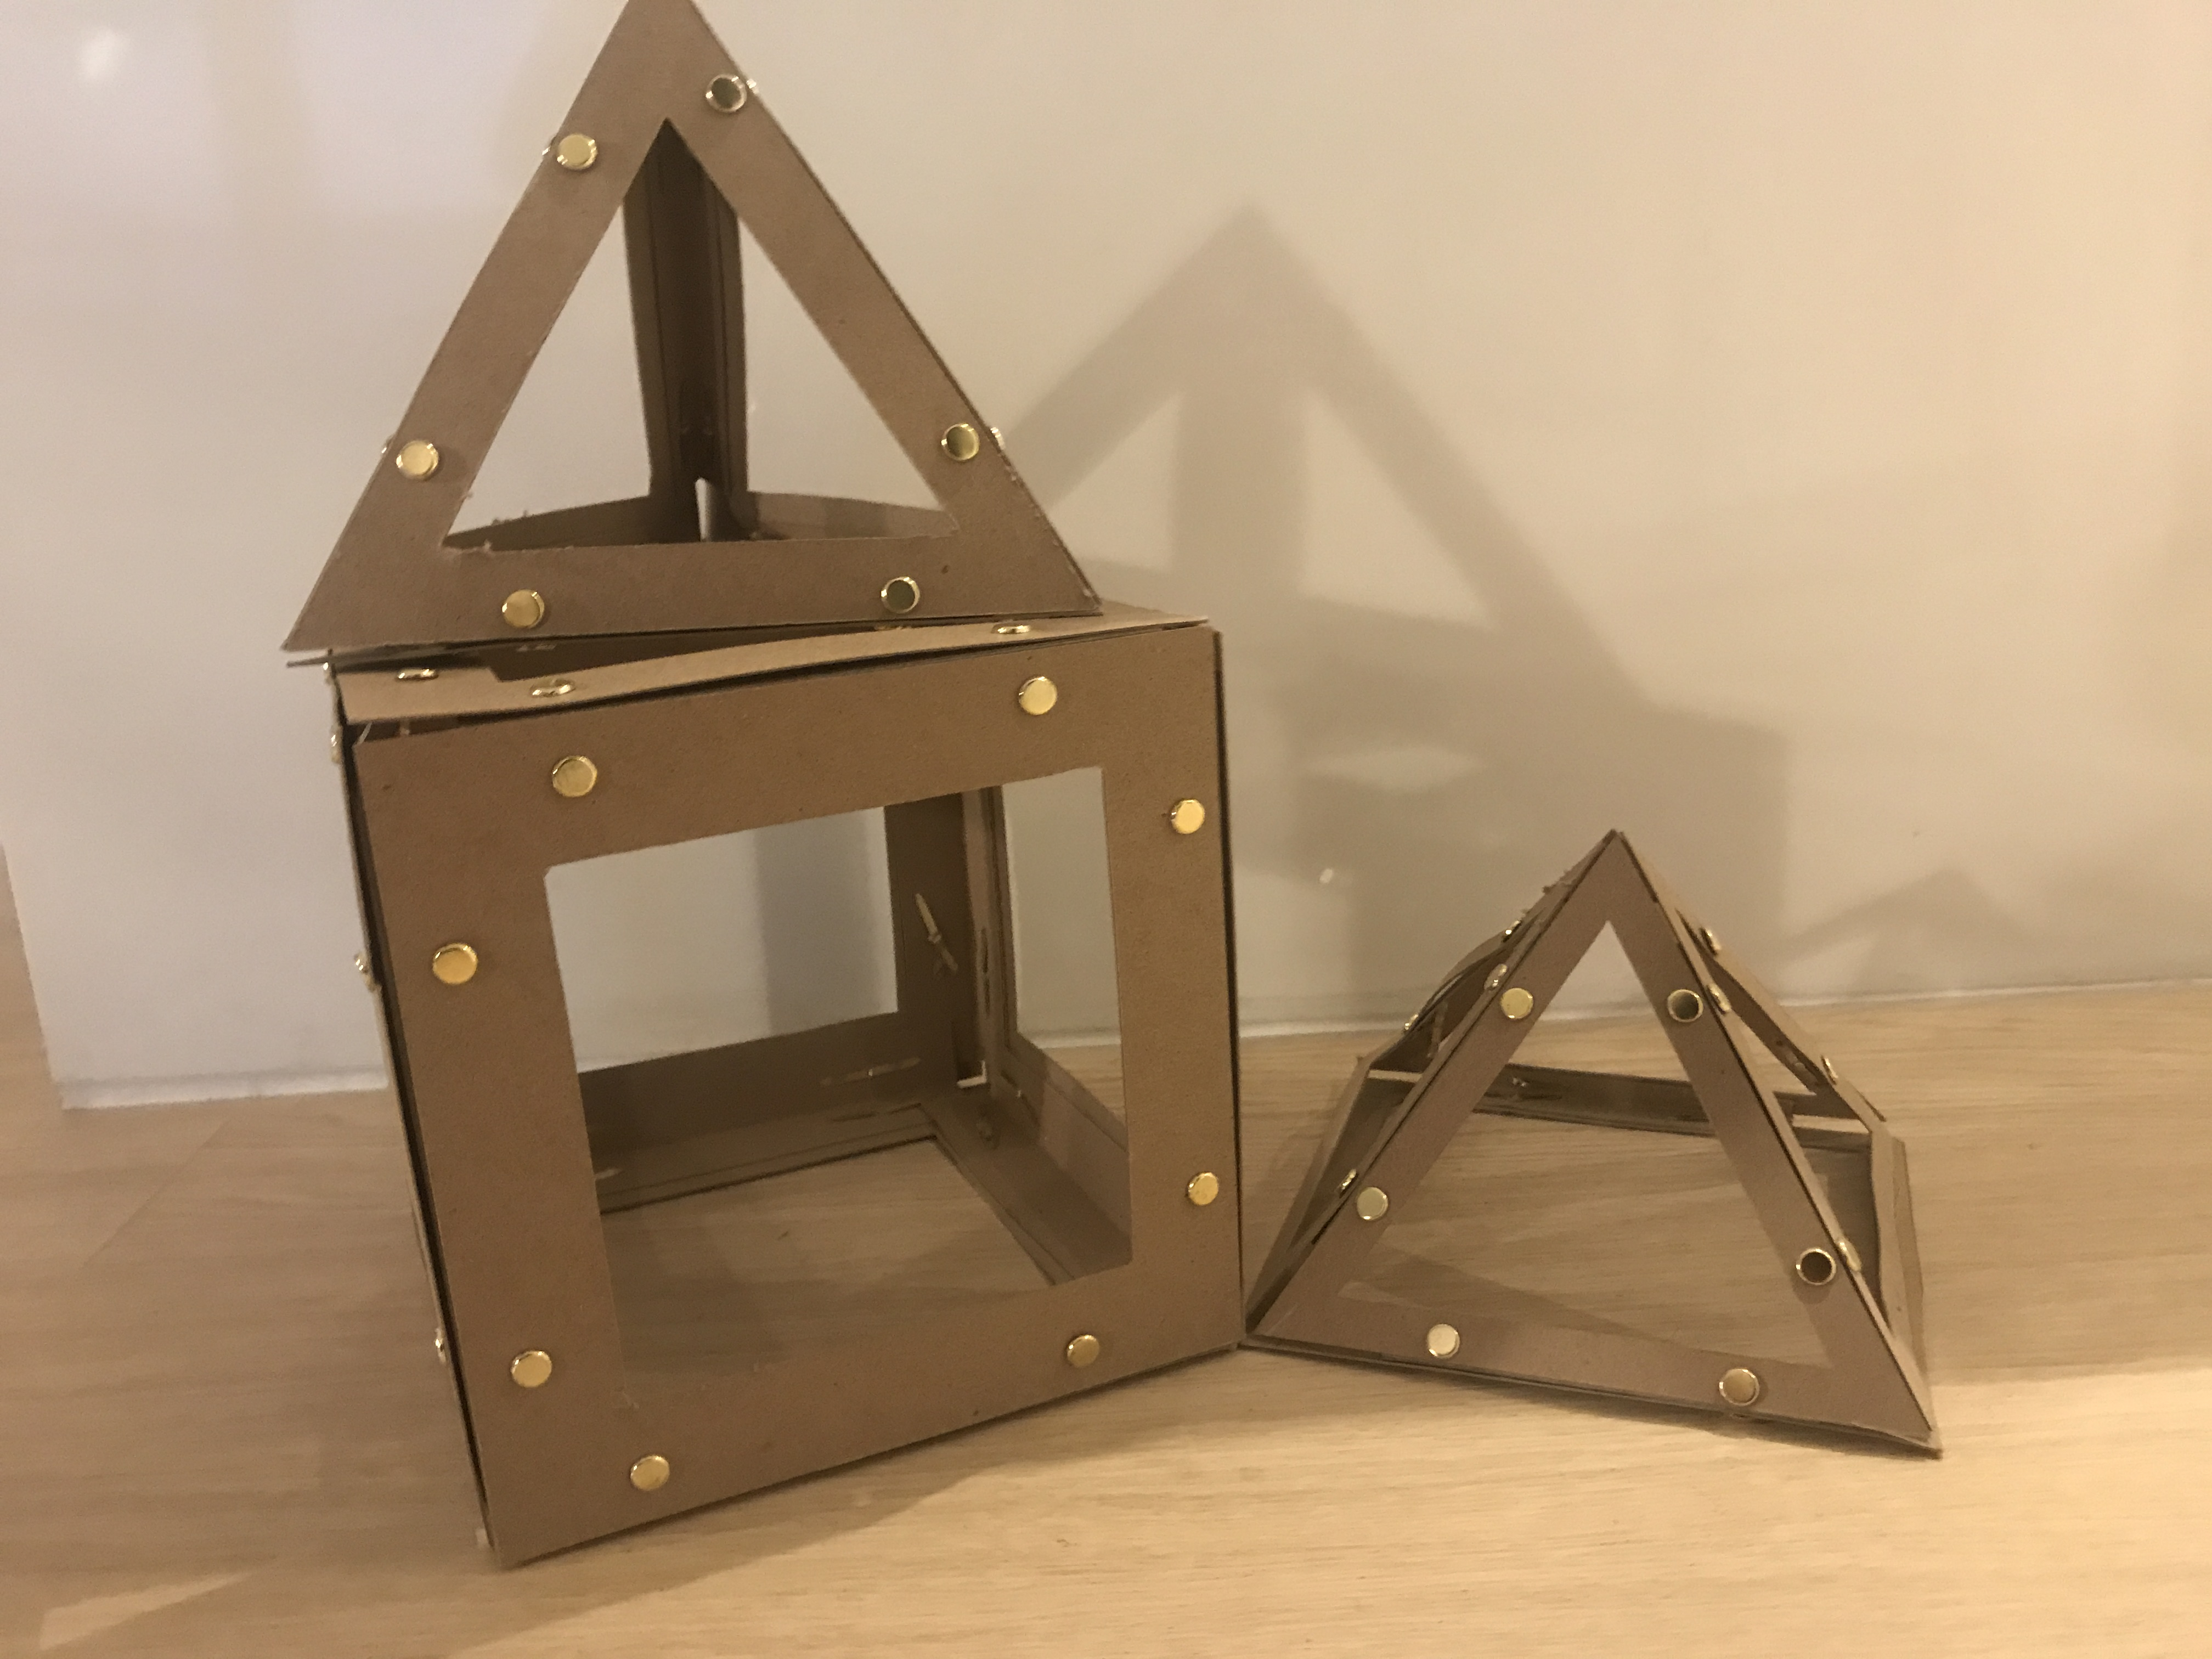 Assignment #8 -Cardboard Polyhedron